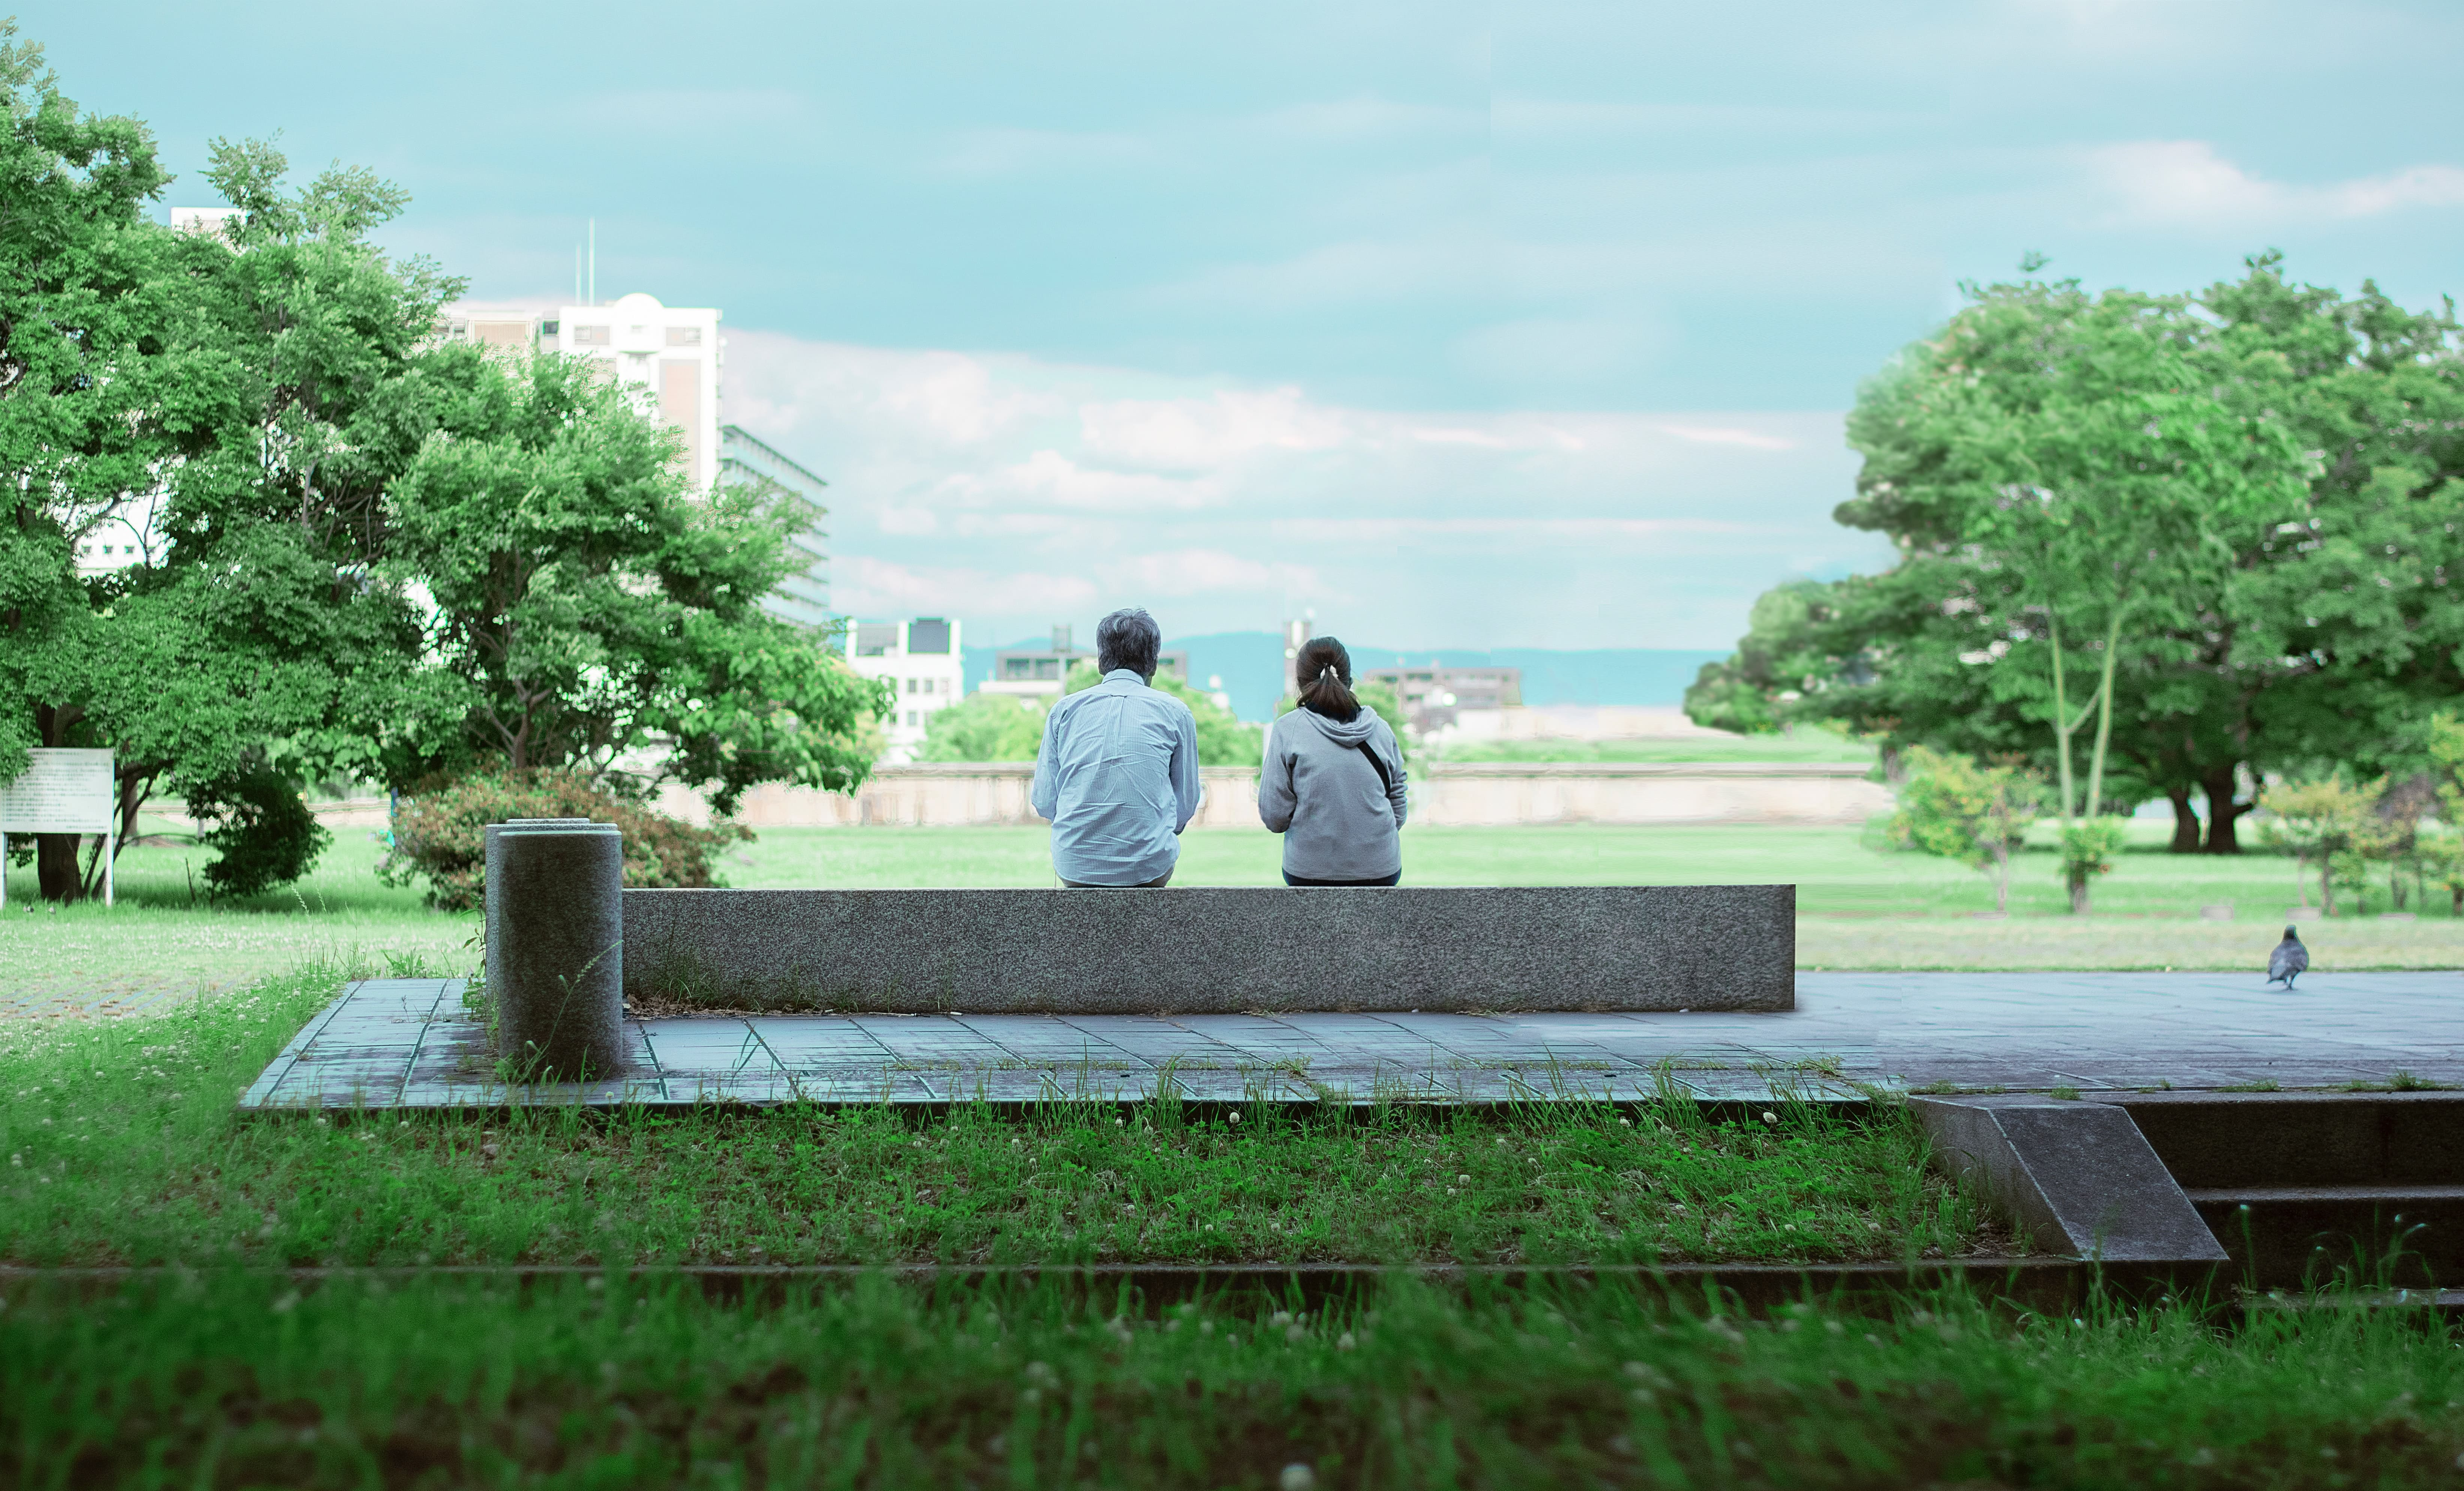 Couple outside in a park on a bench